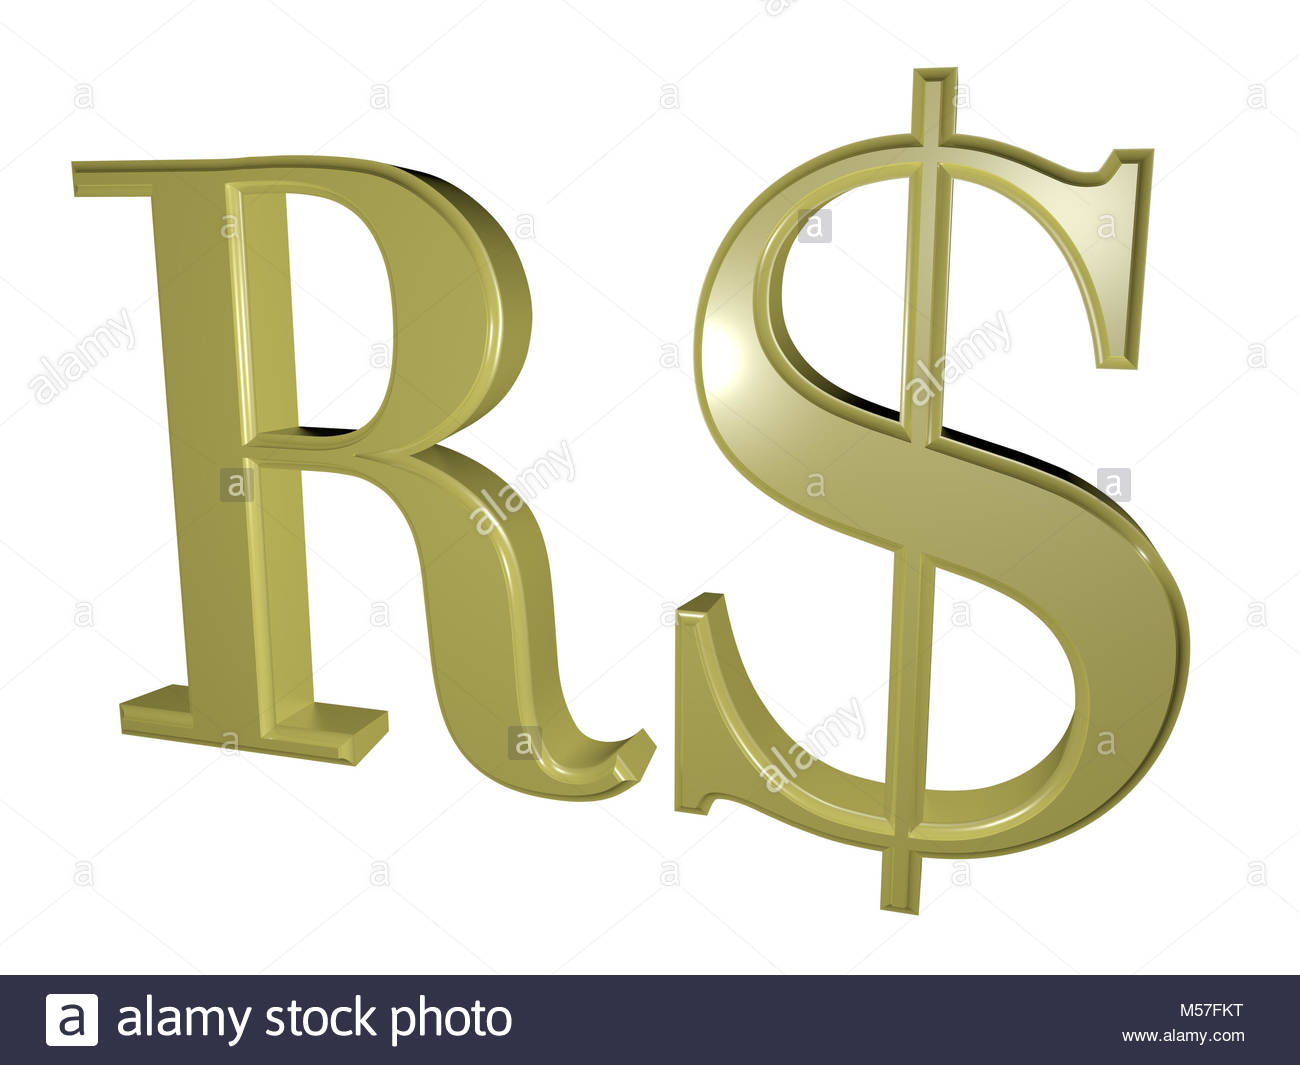 Brl Stock Photos Brl Stock Images Alamy